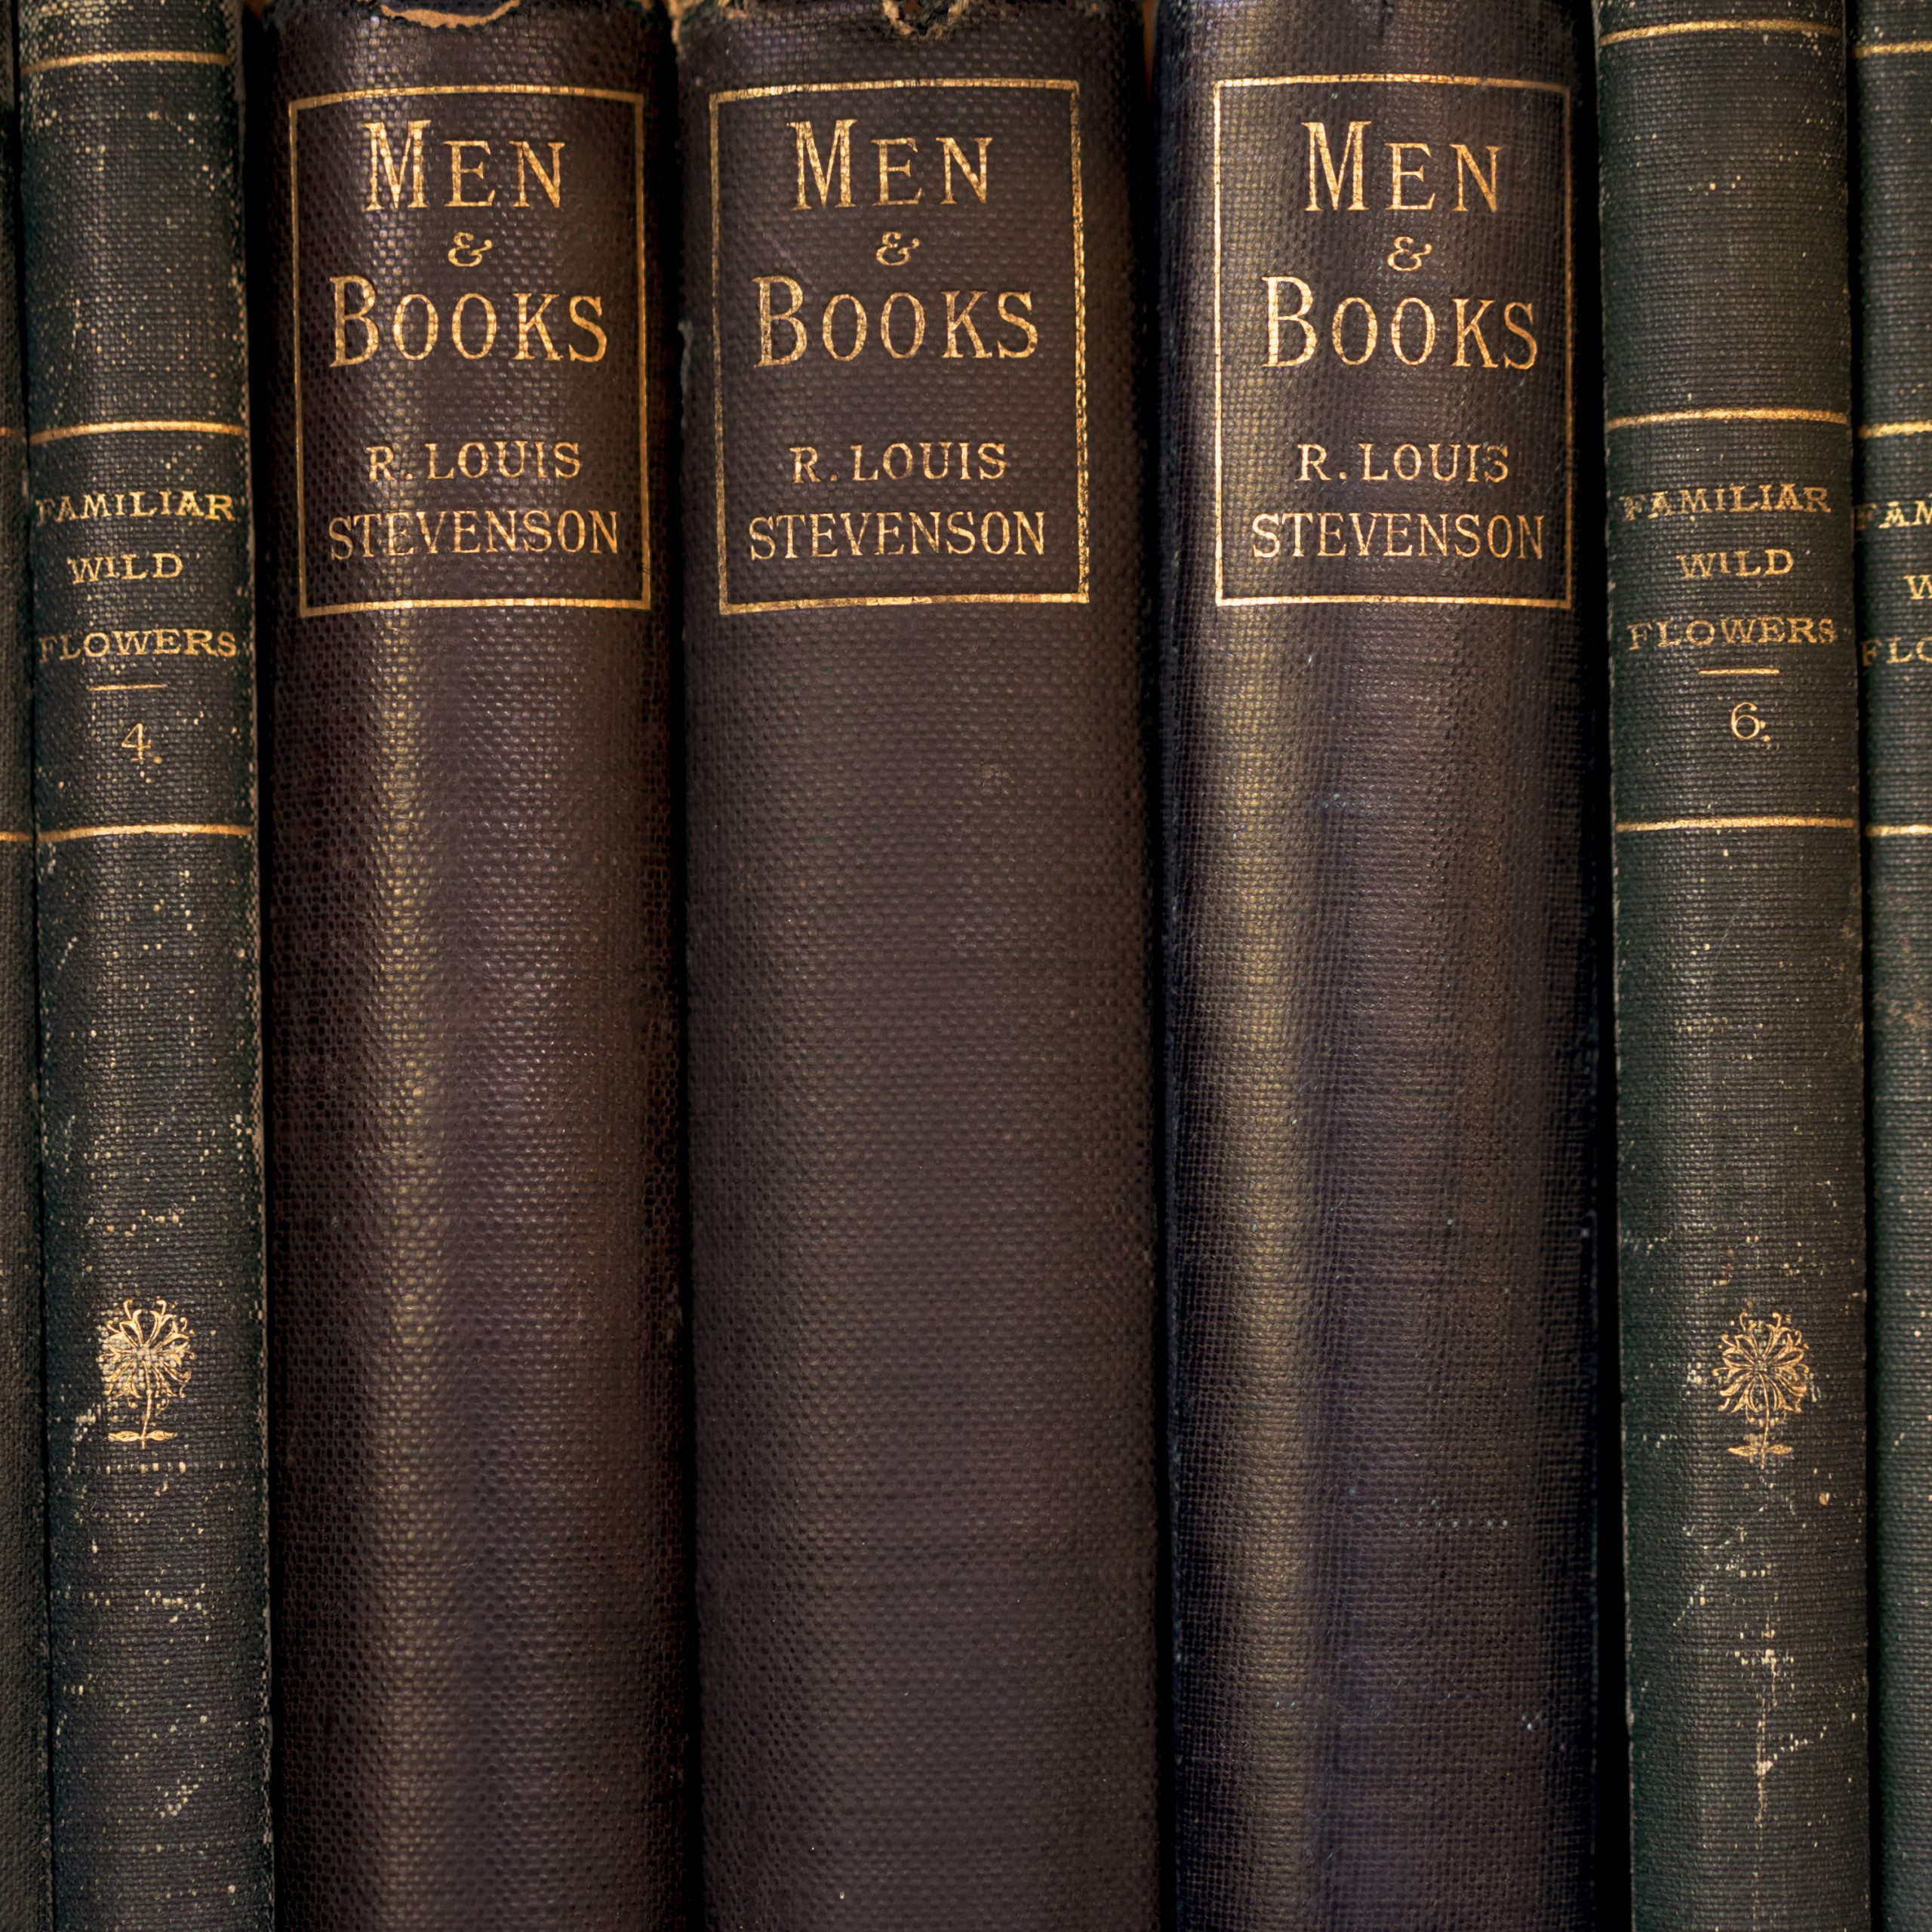 Men & Books